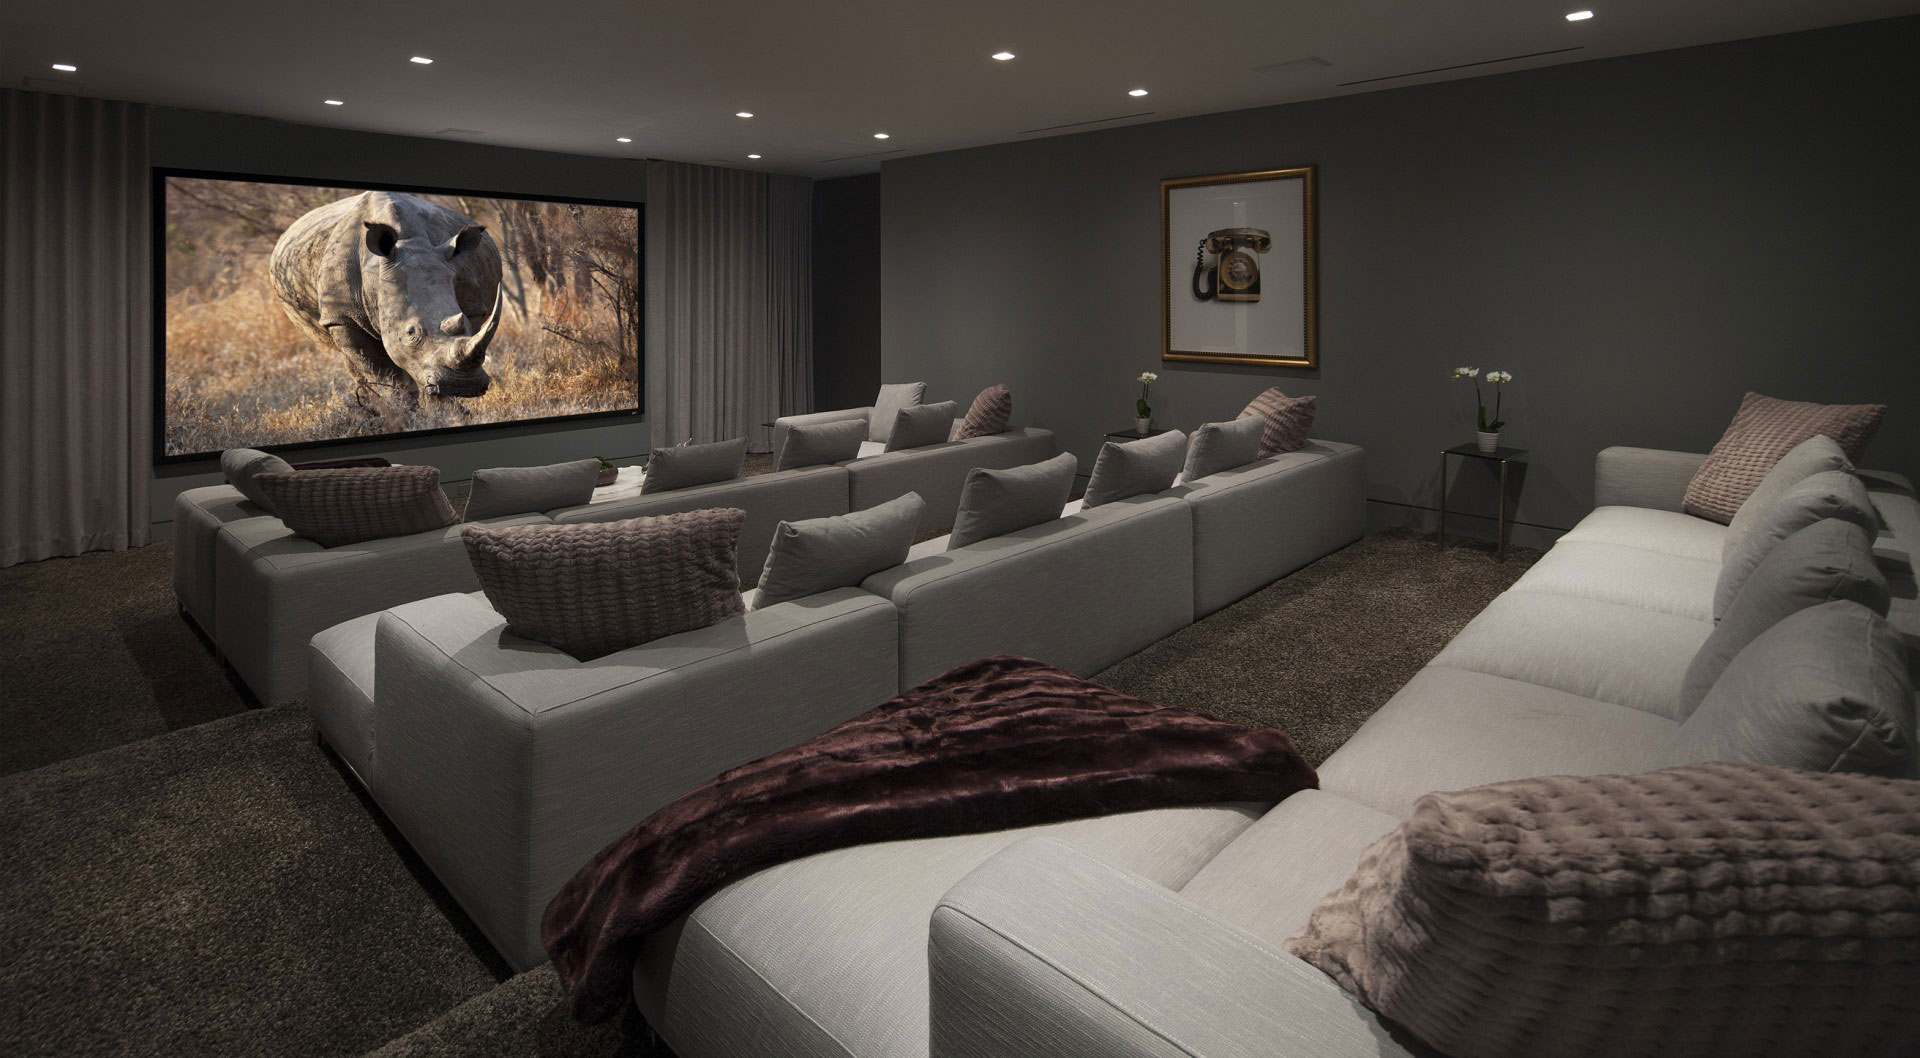 home movie theater design house automation installation home home theater system delhi ncr home theater designing home home theater designers